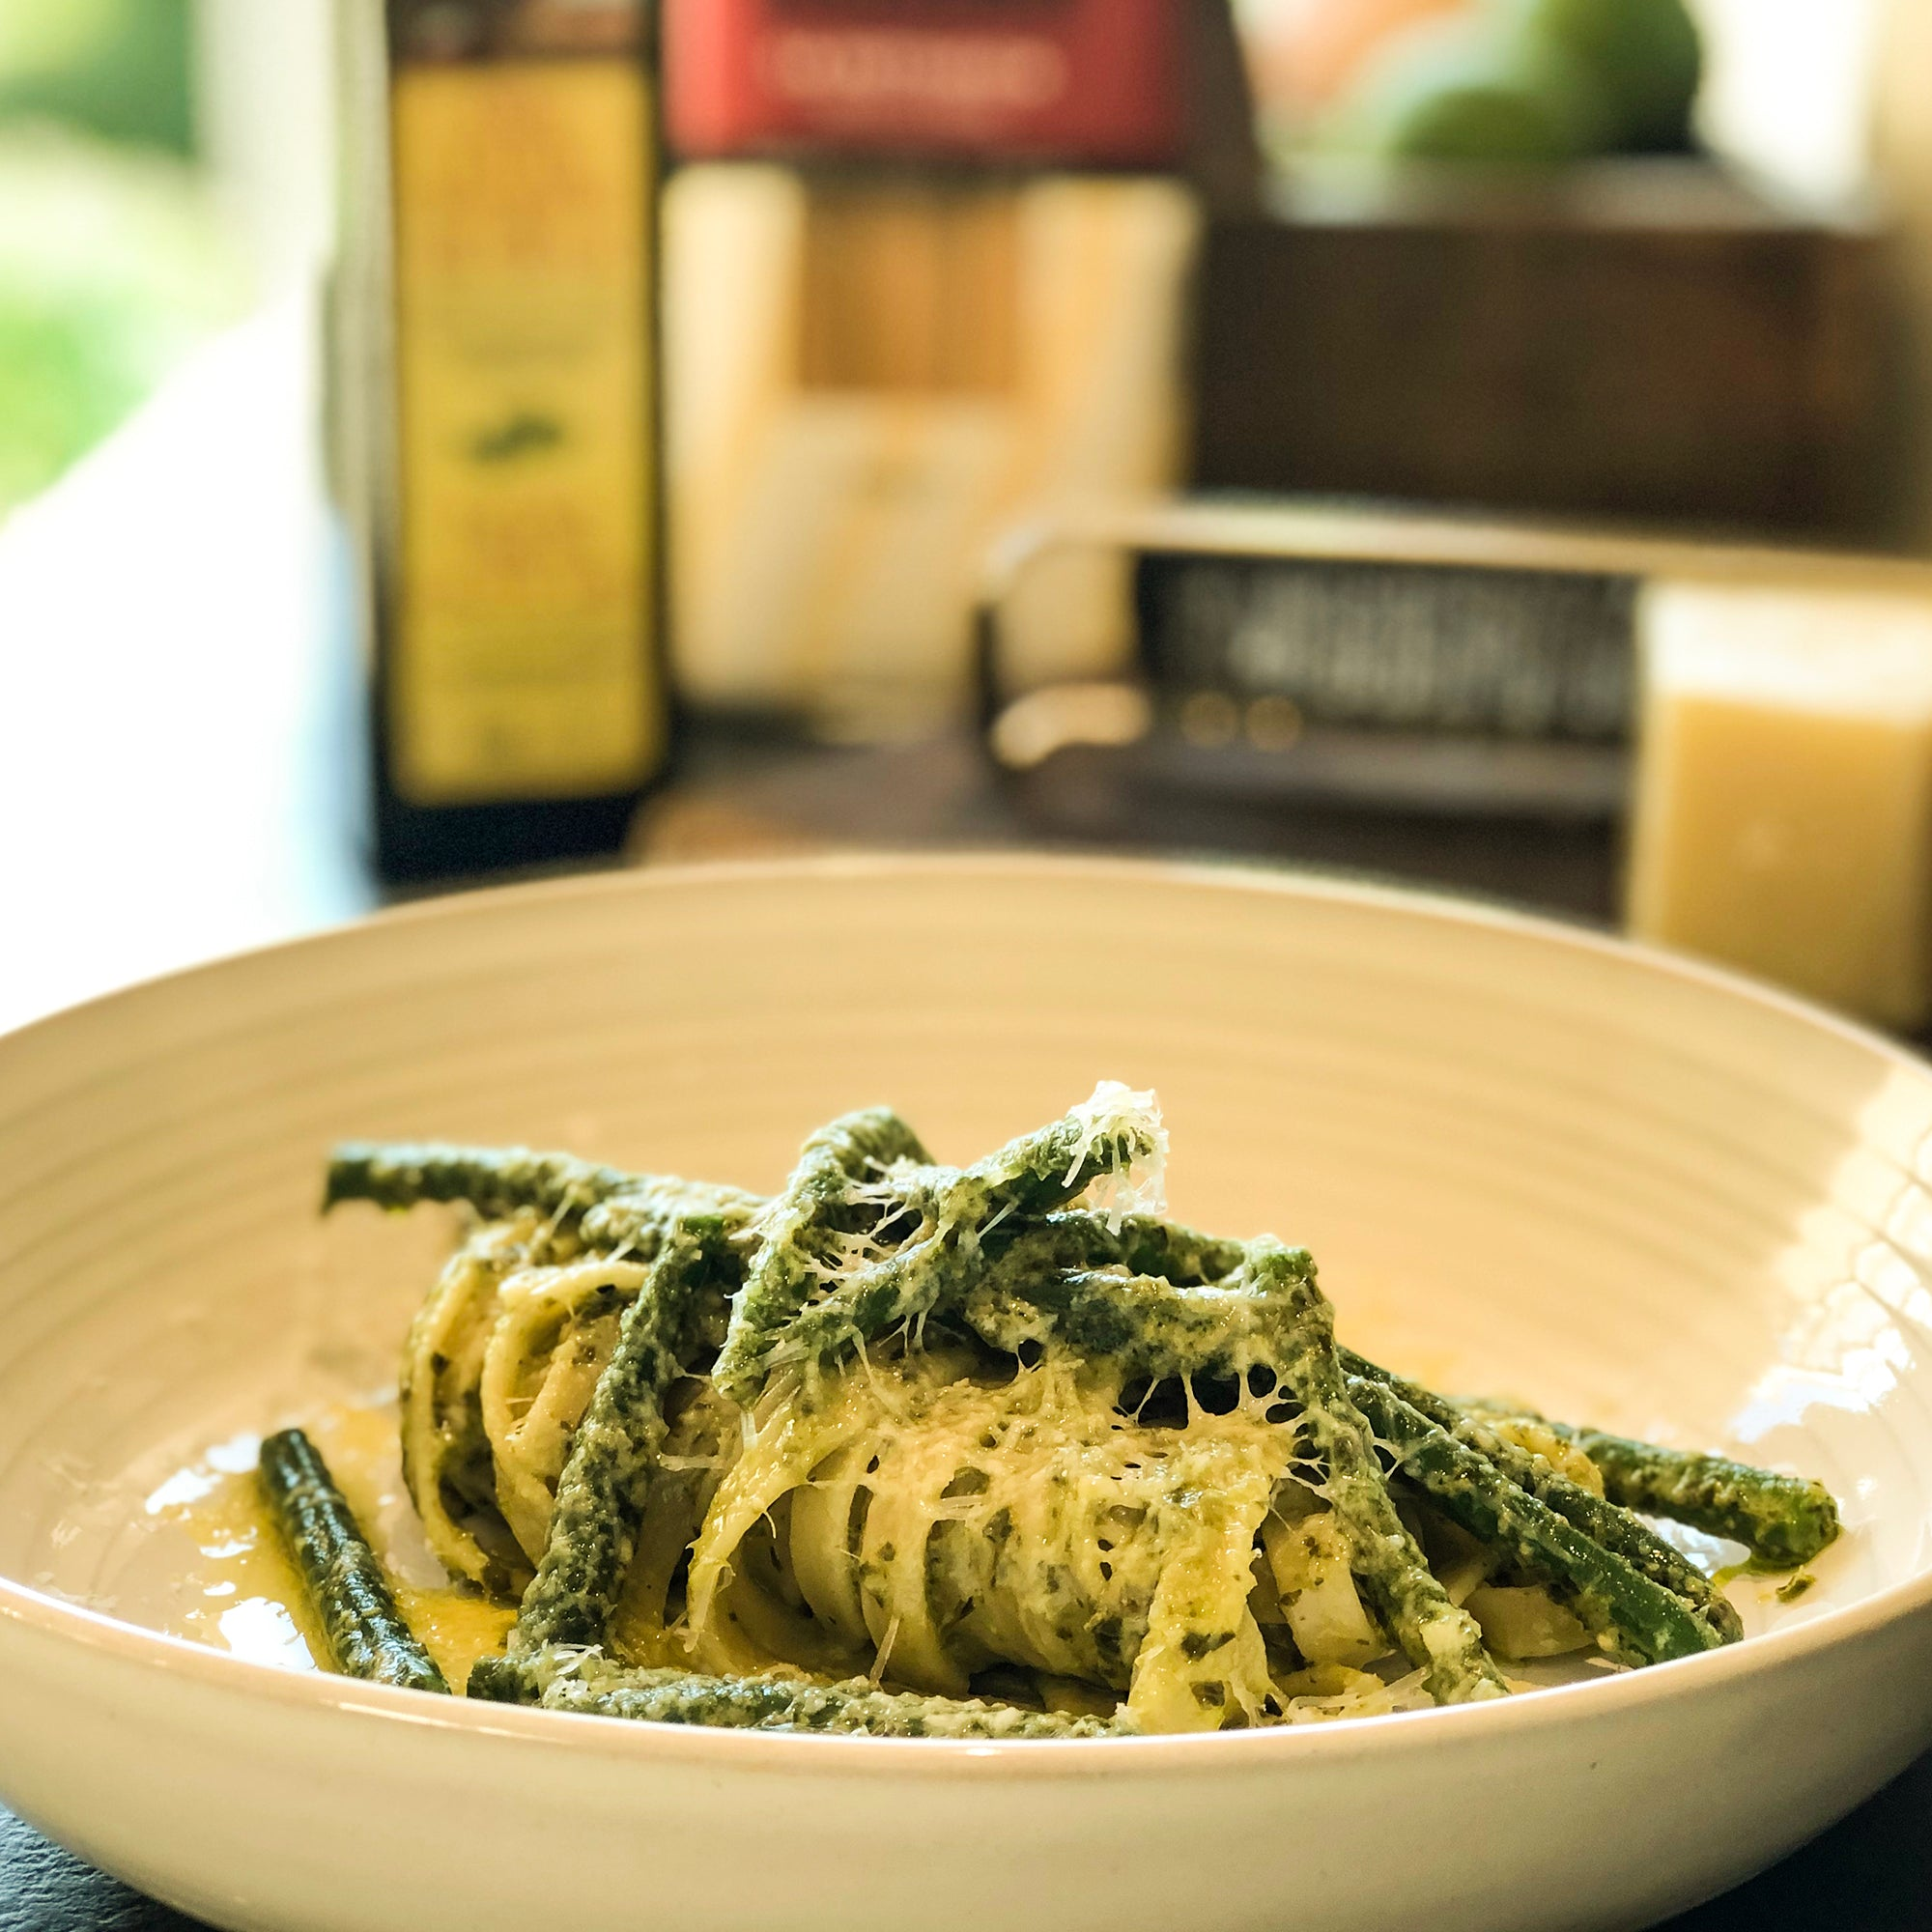 Fettuccine Pasta with Pesto, Green Beans and Pecorino Cheese